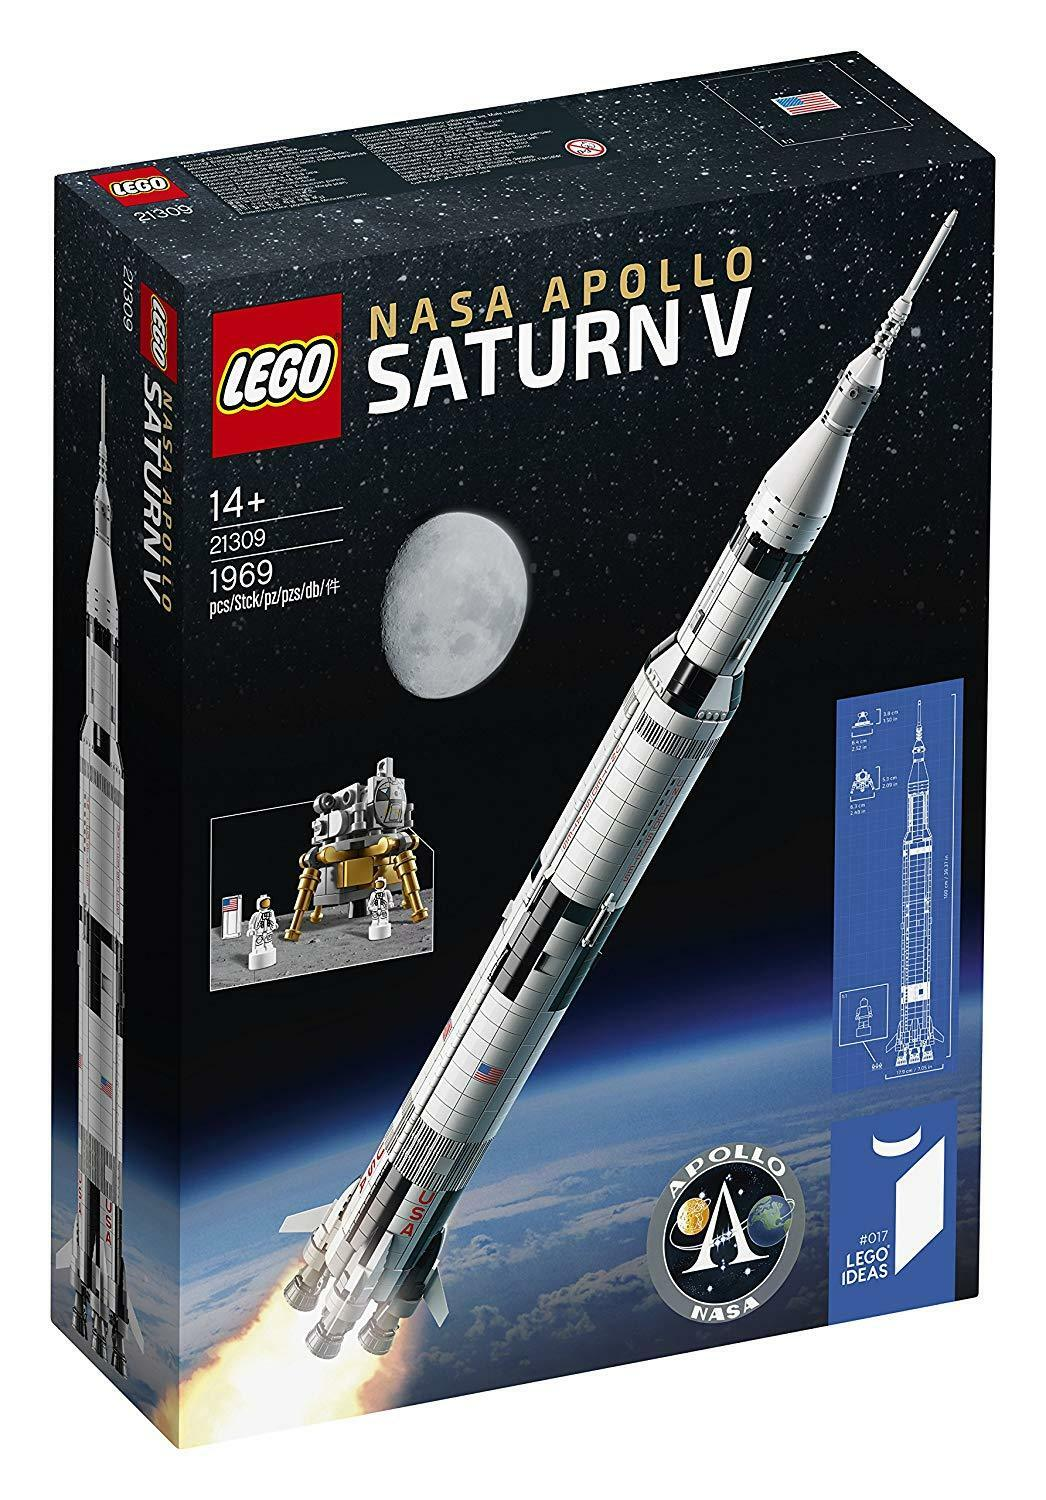 LEGO 21309 IDEAS LEGO NASA Apollo Saturn V - Rakete Mondkalender Raum